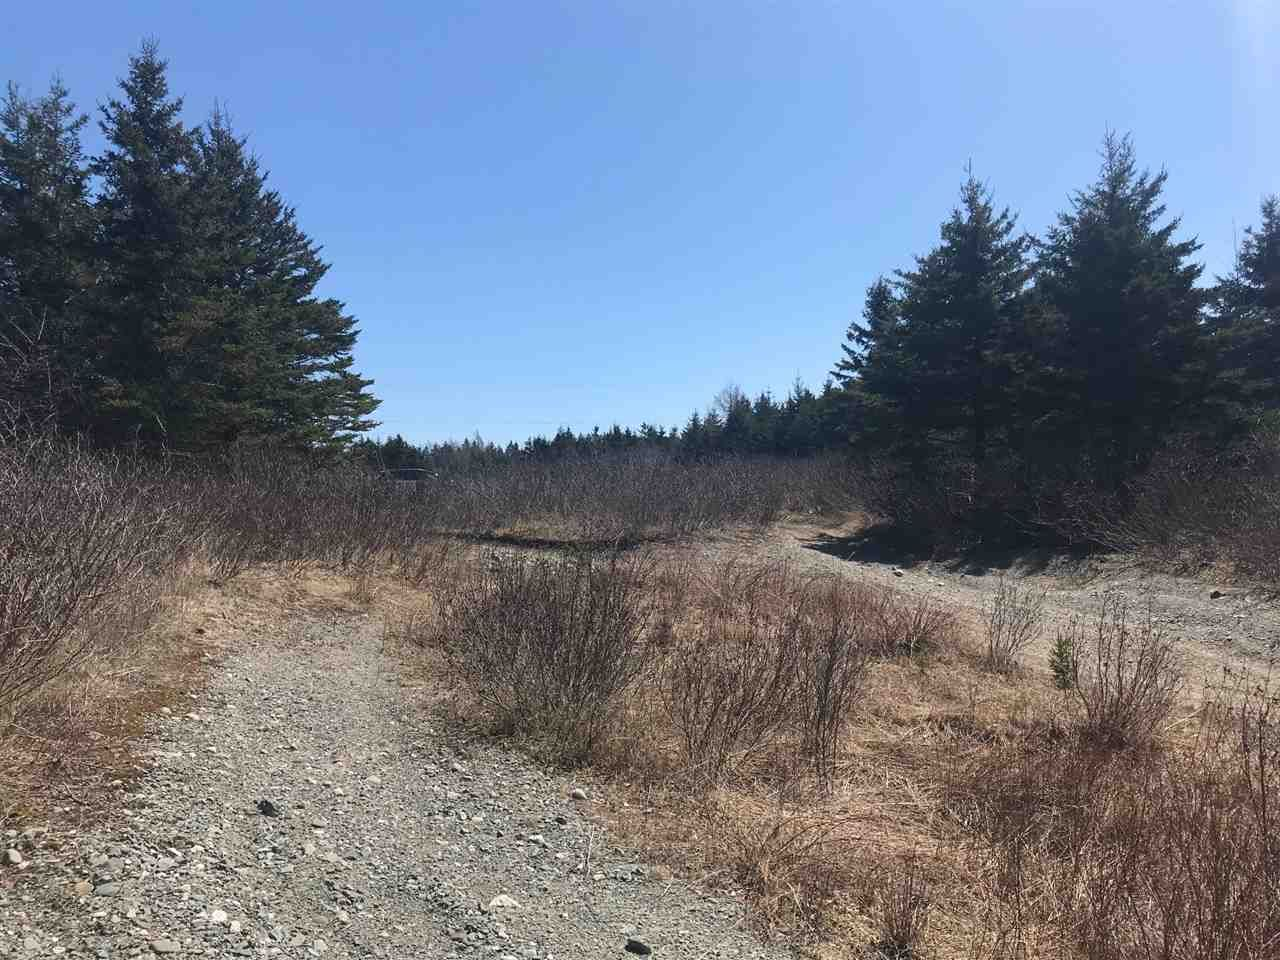 Photo 11: Photos: 11574 Highway 7 in Lake Charlotte: 35-Halifax County East Vacant Land for sale (Halifax-Dartmouth)  : MLS®# 201927372